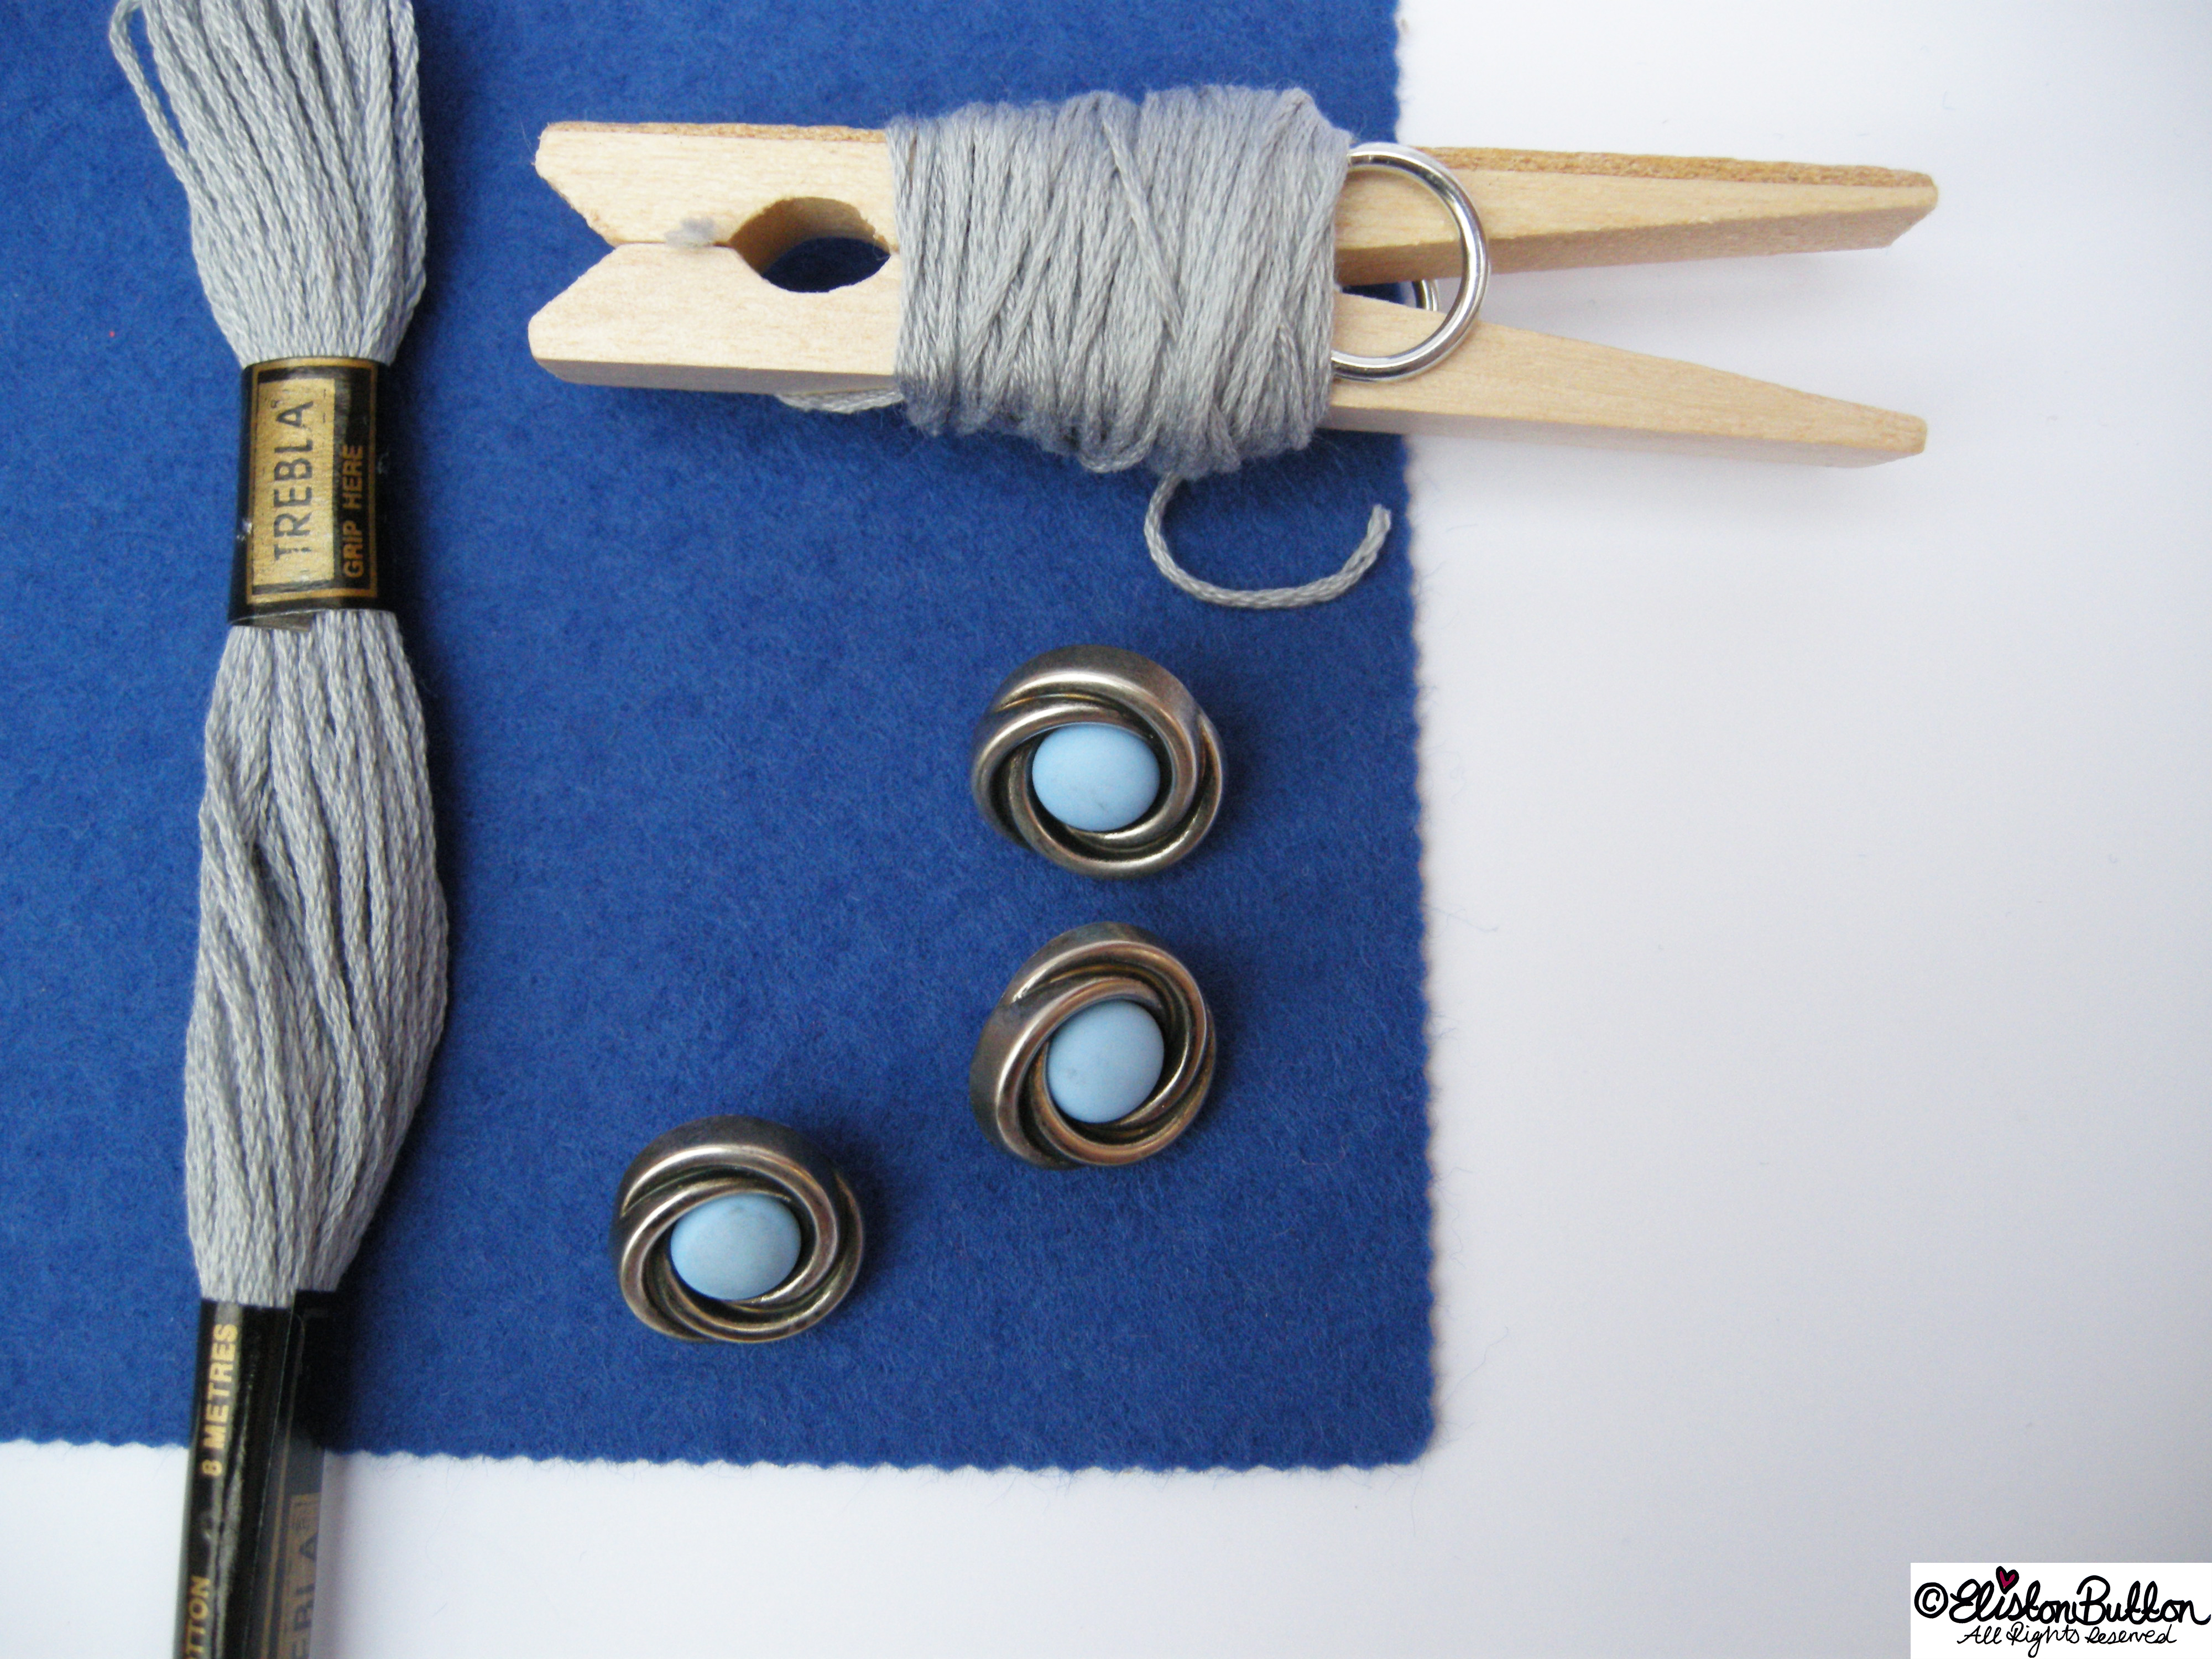 Art Deco Swirl Buttons and Blue Felt with Silver Grey Embroidery Thread - 27 Before 27 - Out of the Blue at www.elistonbutton.com - Eliston Button - That Crafty Kid – Art, Design, Craft & Adventure.